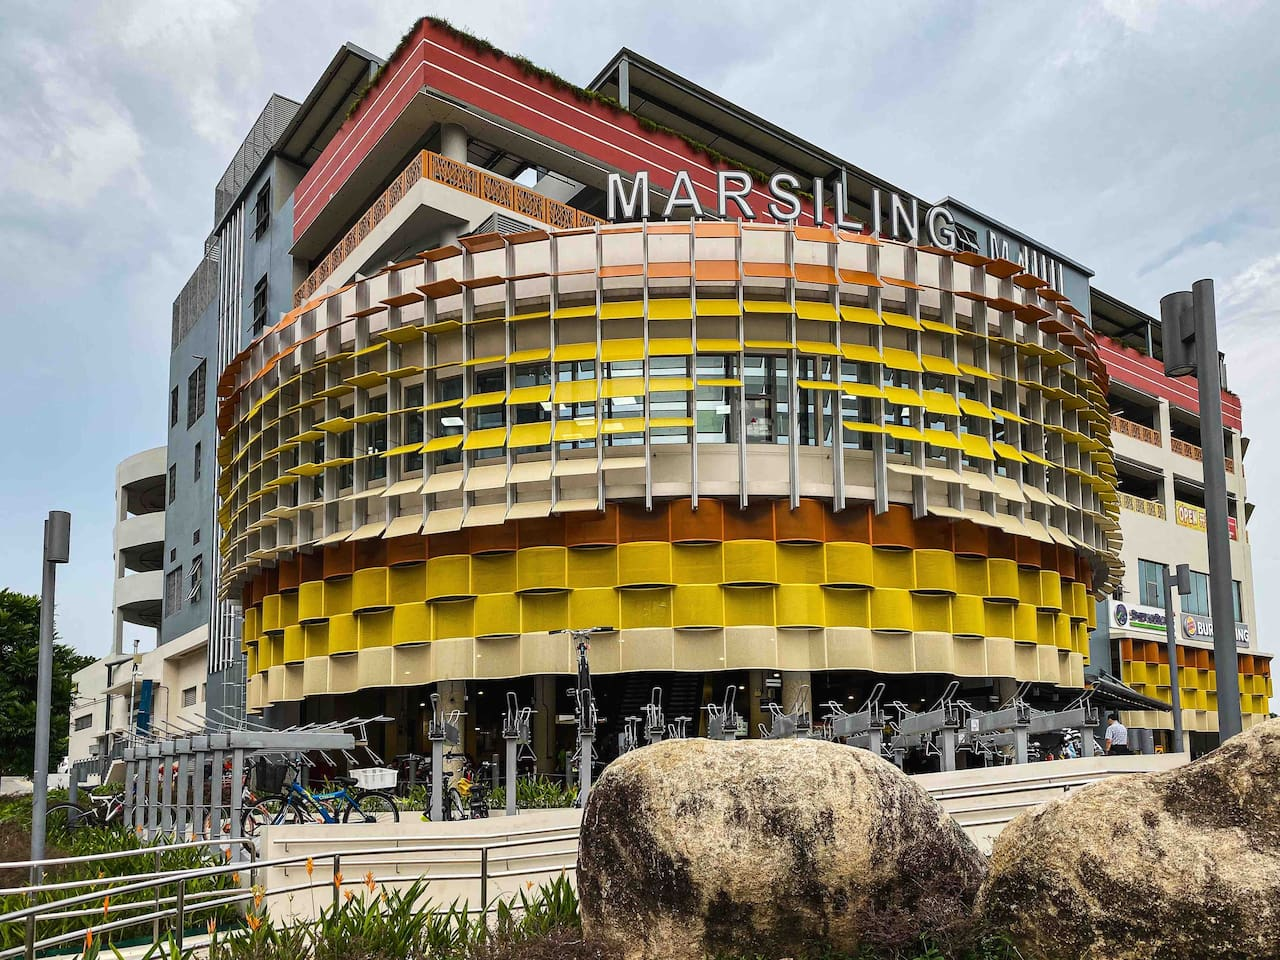 Marsiling Mall has a 24-hour supermarket, a medical clinic, retail shops on the second floor and more 70 hawker stalls that offer a great variety of cheap local food on the first floor.